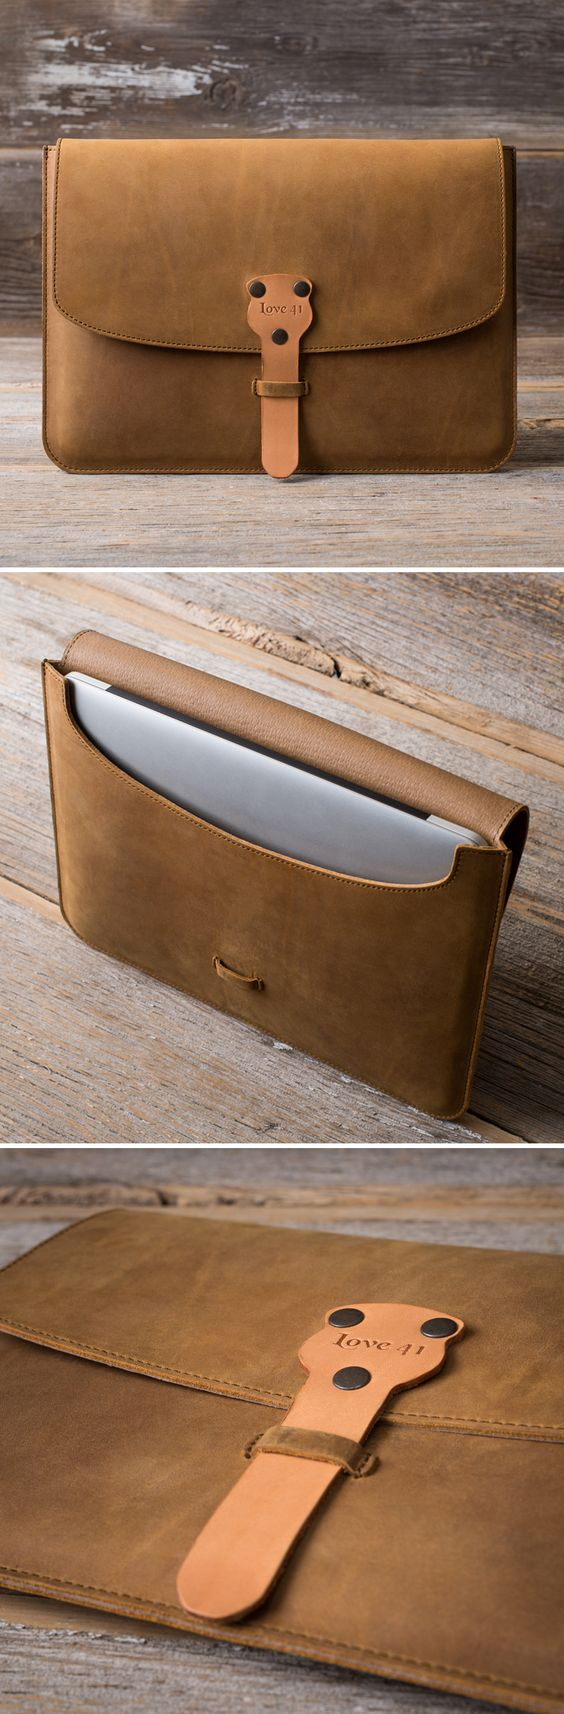 The new MacBook Case is made with full grain leather, features outward seams to help protect your laptop, and doubles as a document holder. Come have a closer look!